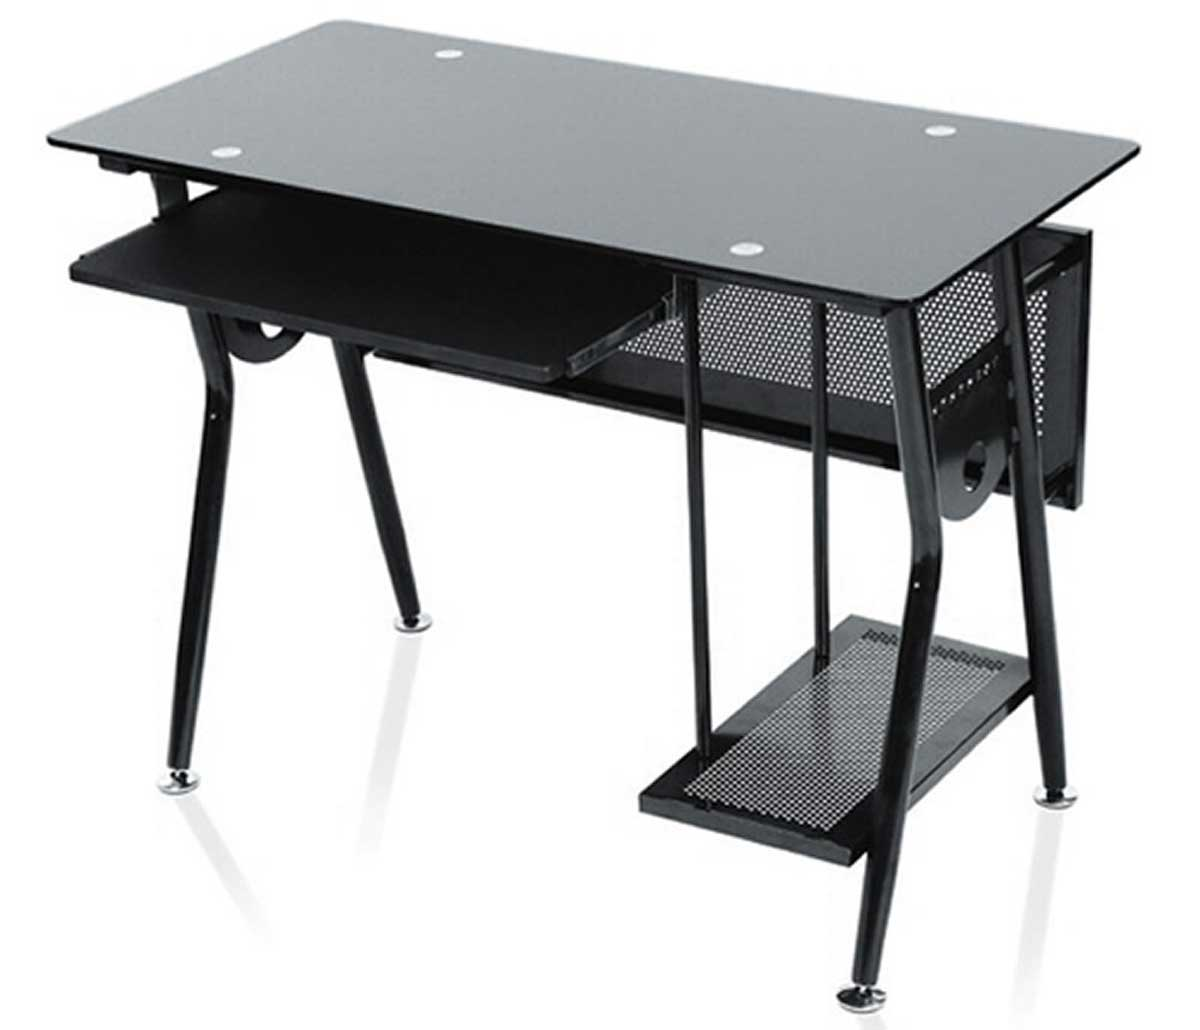 Glass desk top cheap Office Supplies